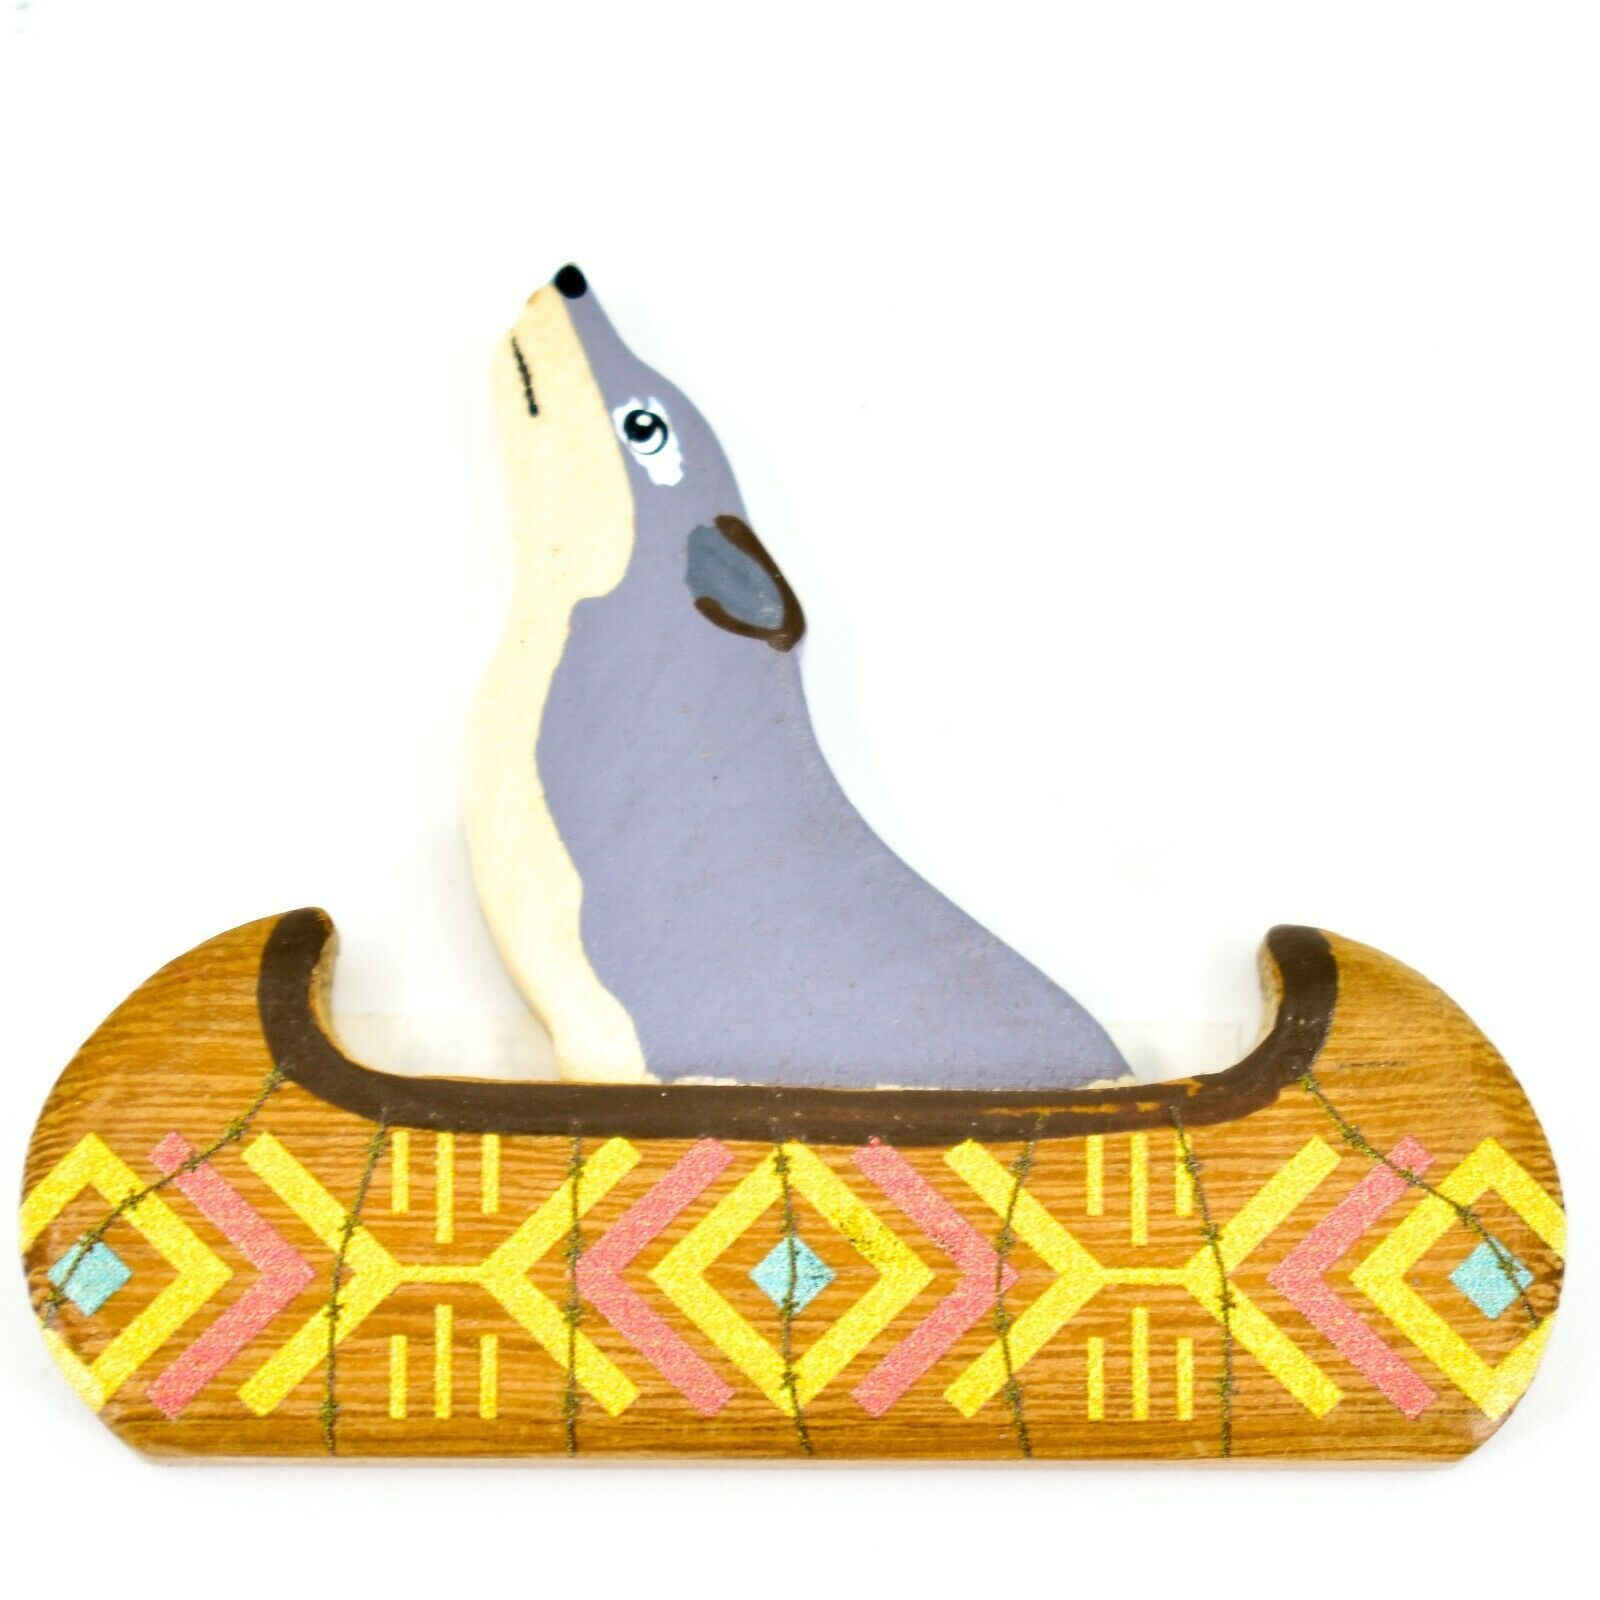 Northwoods Howling Wolf in Canoe Painted Wood Rustic Cabin Refrigerator Magnet